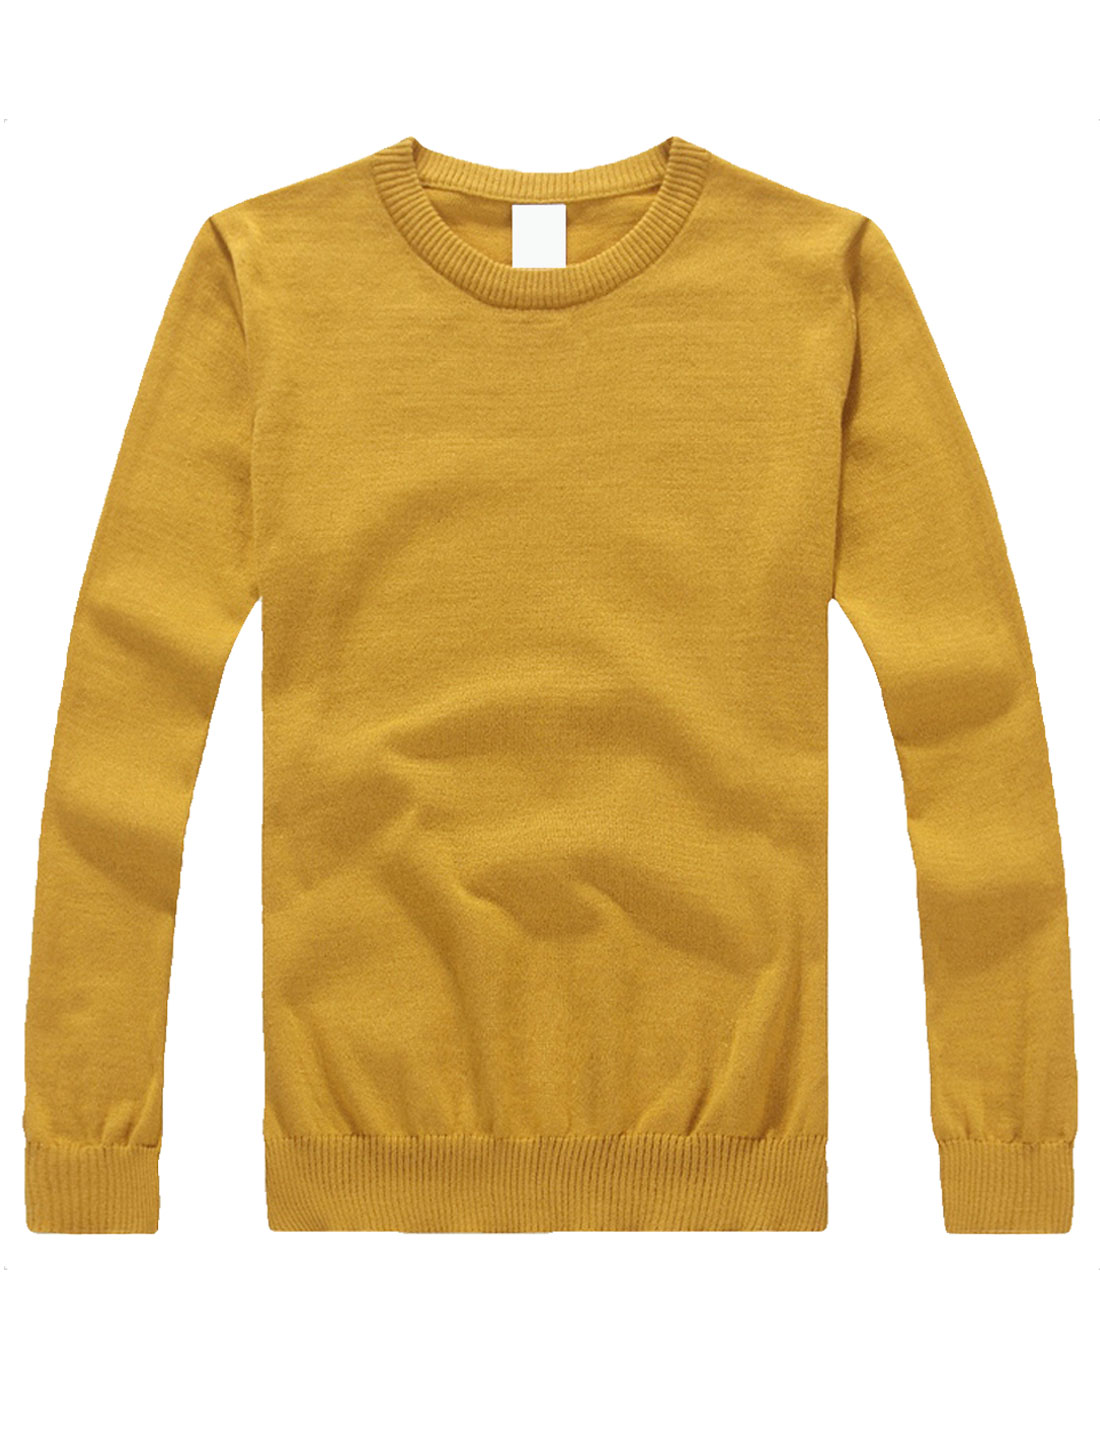 Mens Mustard Stylish Ribbing Hem Solid Color Simple Design Fall Knit Shirt S